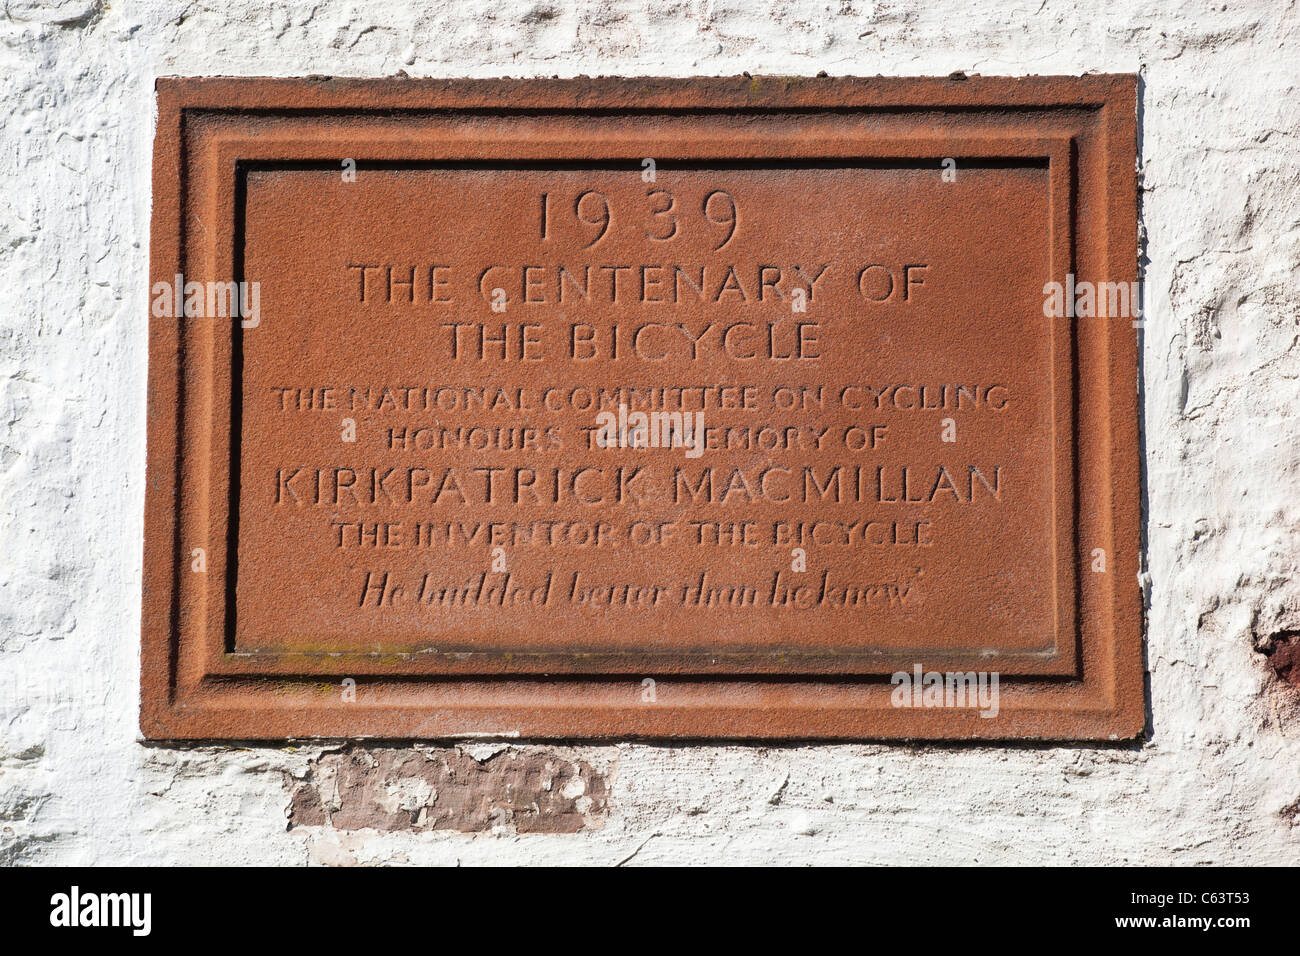 Plaque to the inventor of the bicycle Kirkpatrick Macmillan on side of Courthill Smithy near Keir Mill Scotland - Stock Image